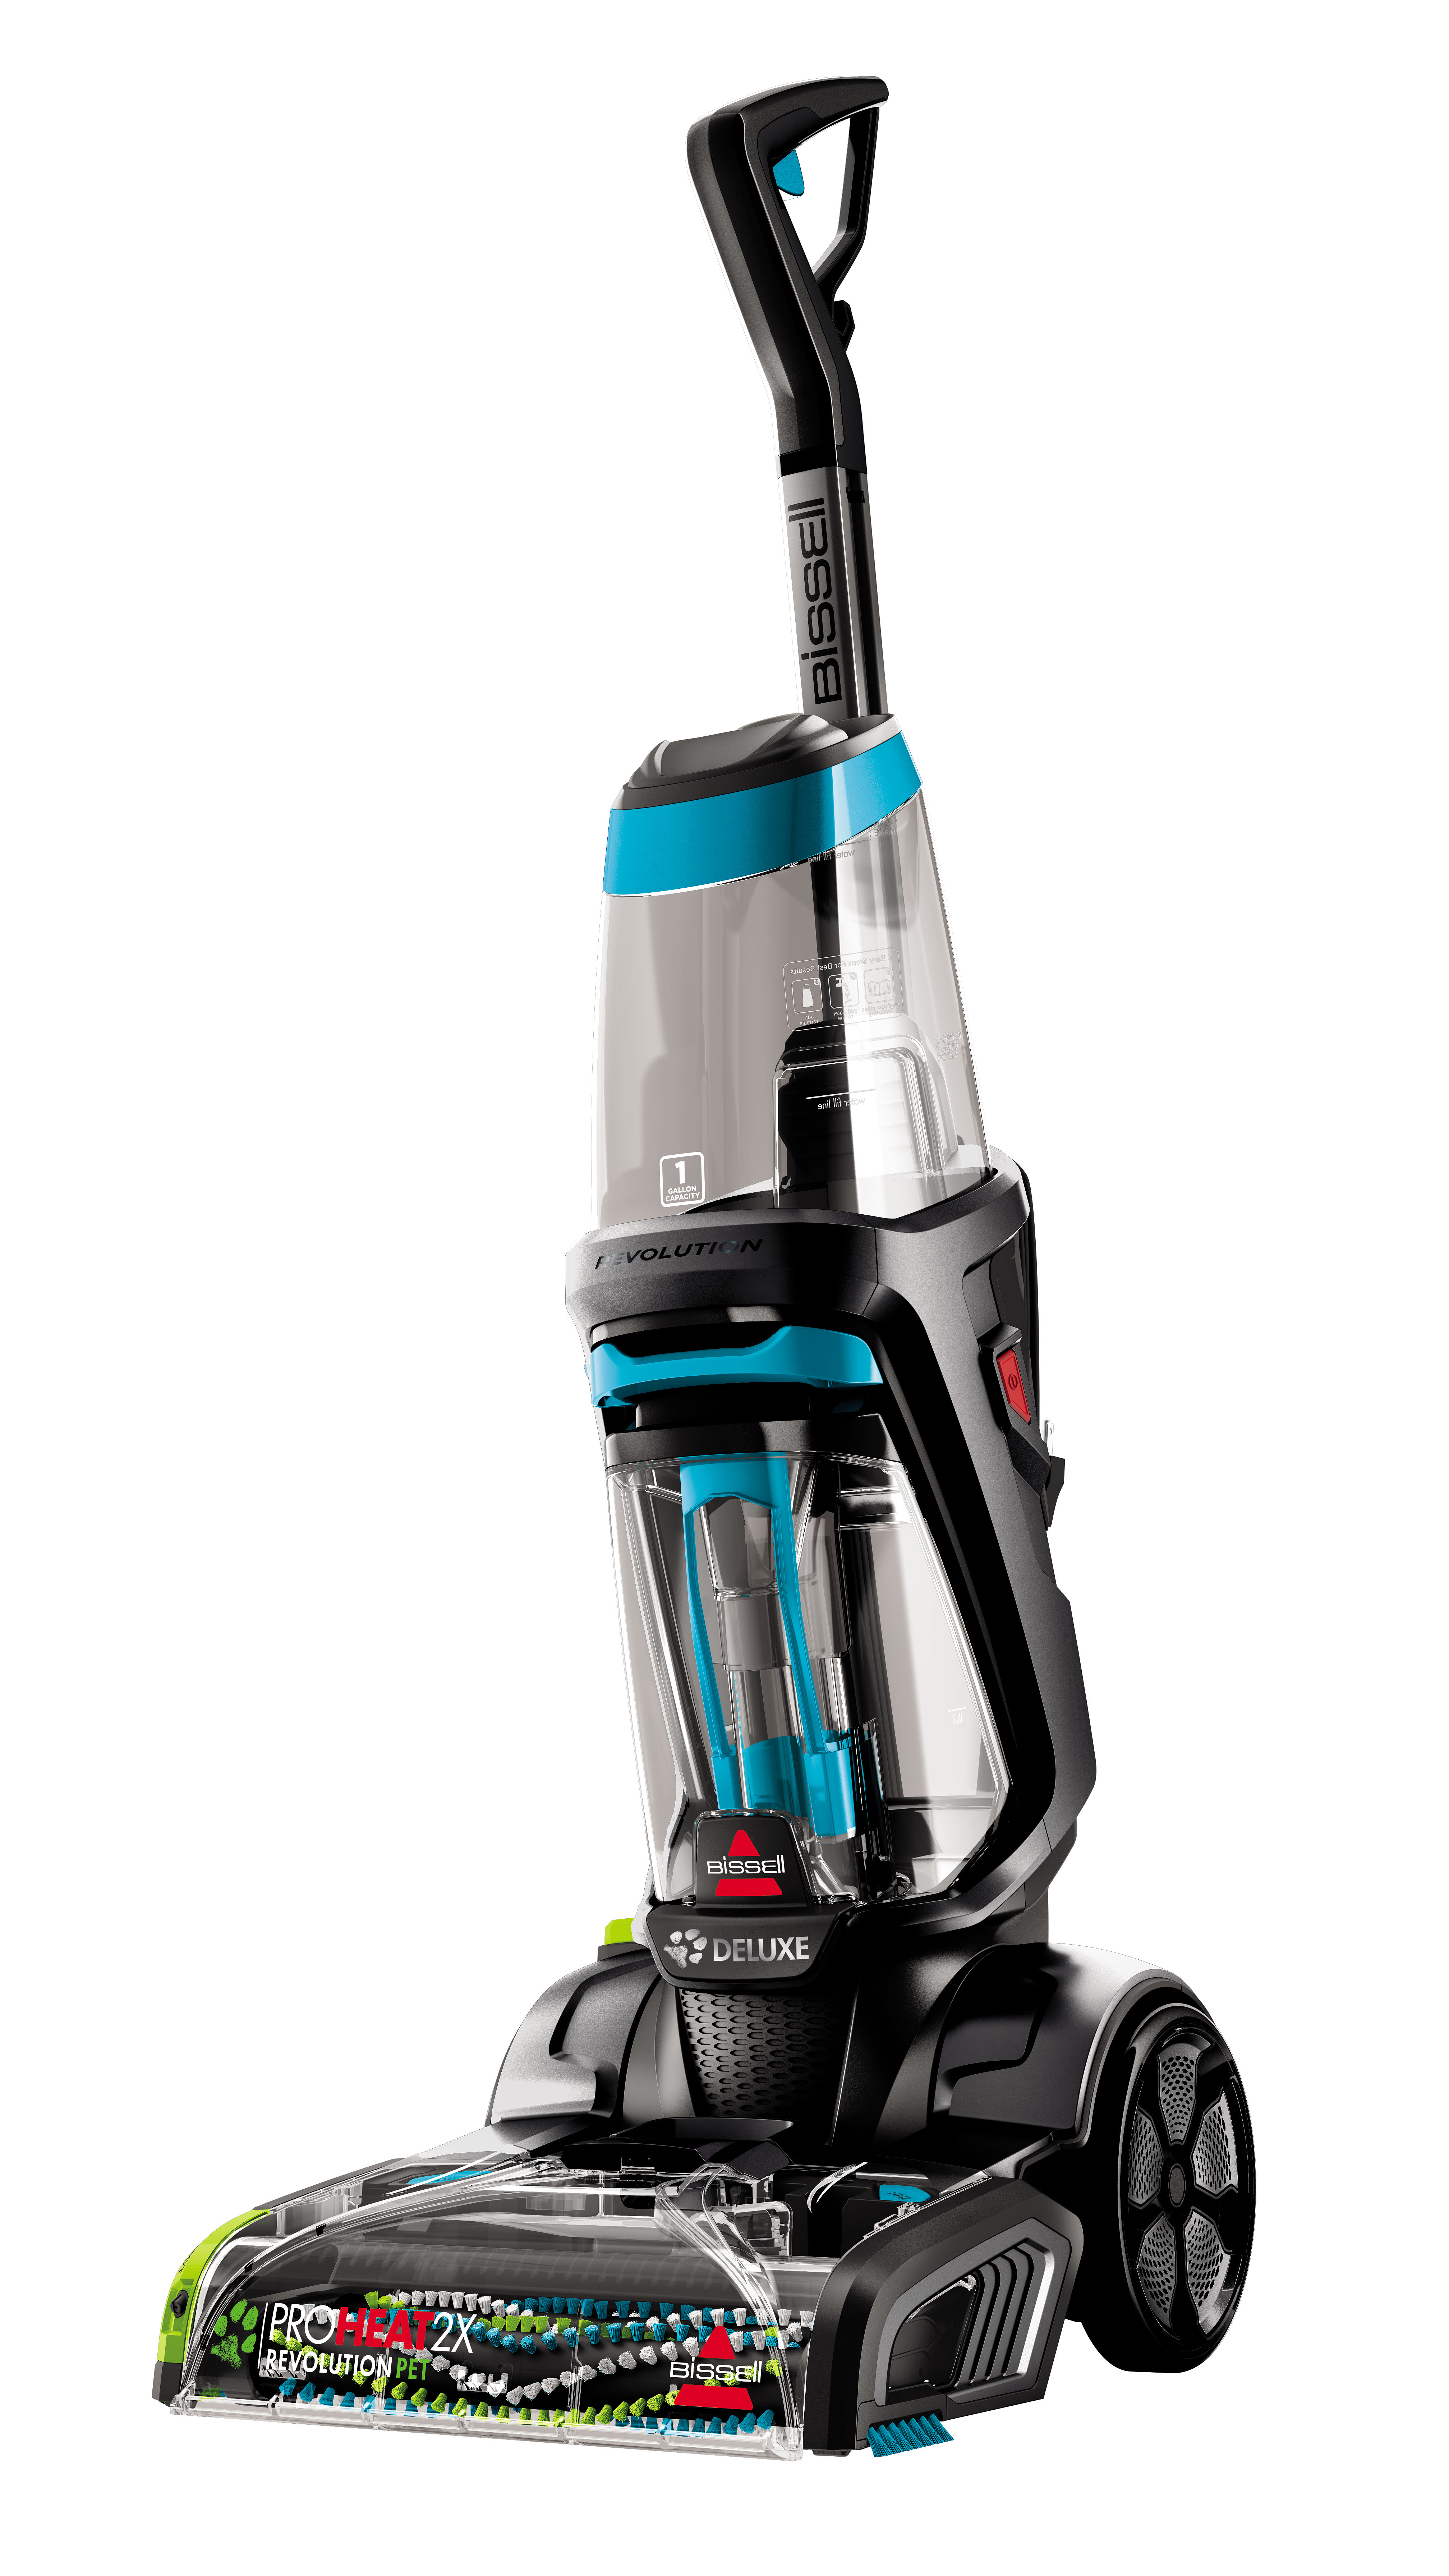 bissell proheat 2x professional carpet cleaner manual